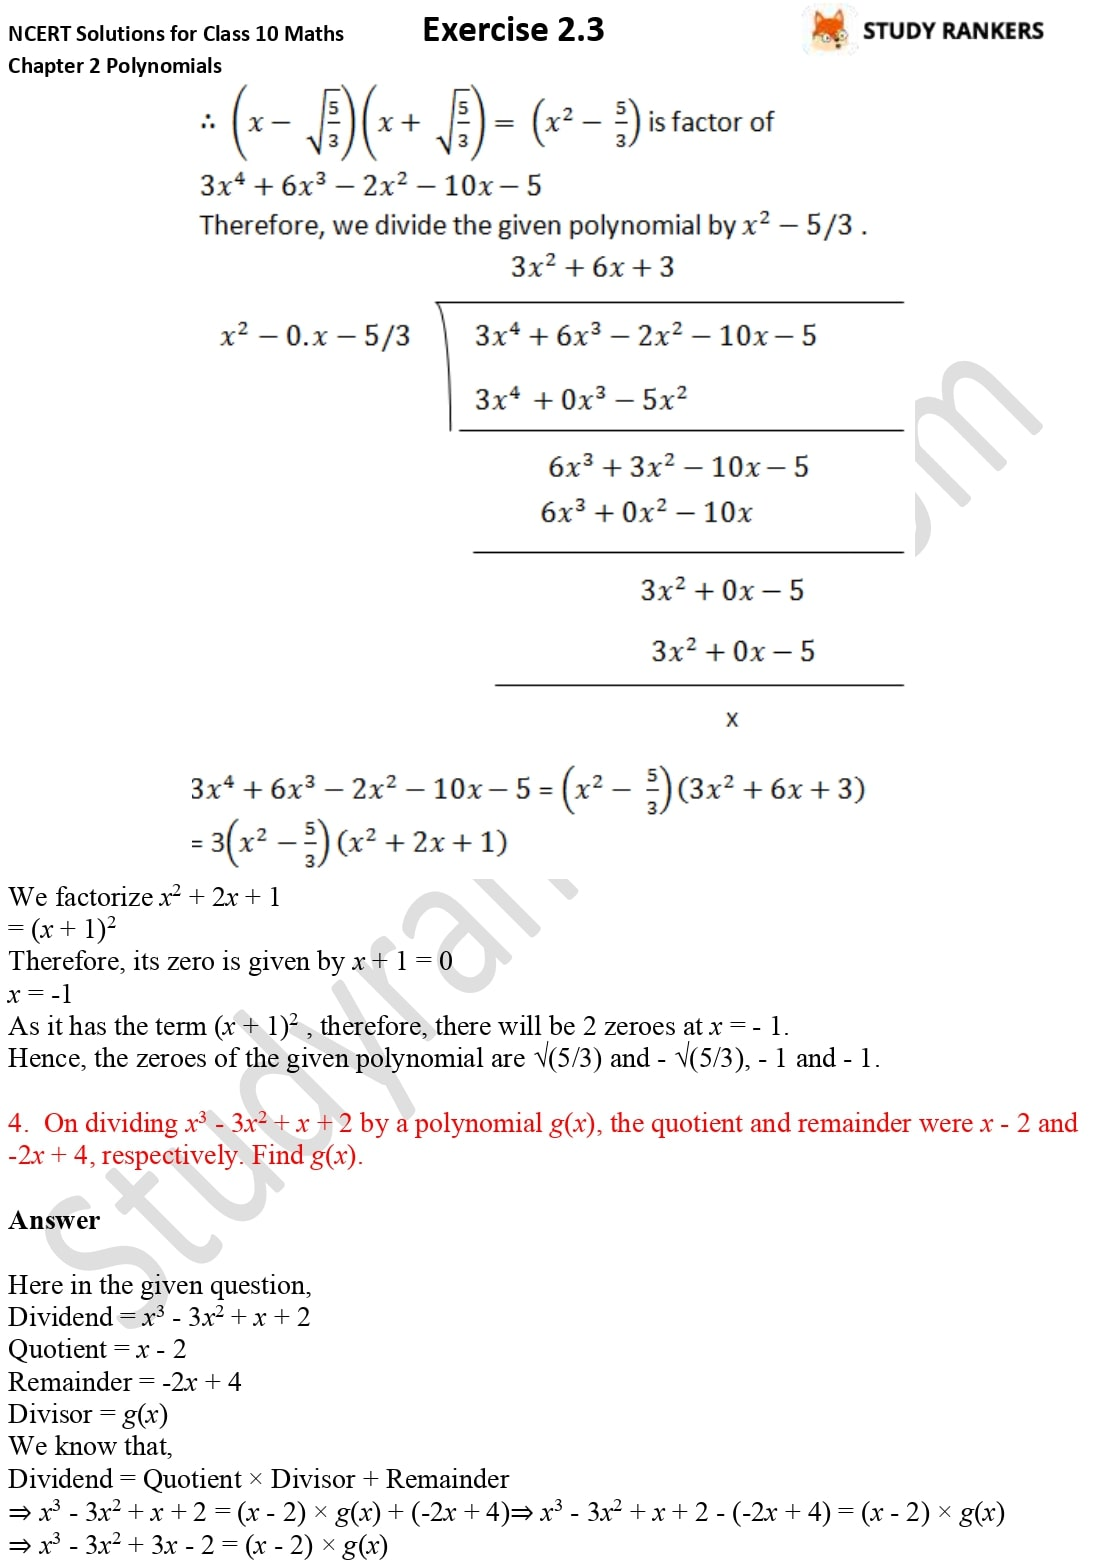 NCERT Solutions for Class 10 Maths Chapter 2 Polynomials Exercise 2.3 4